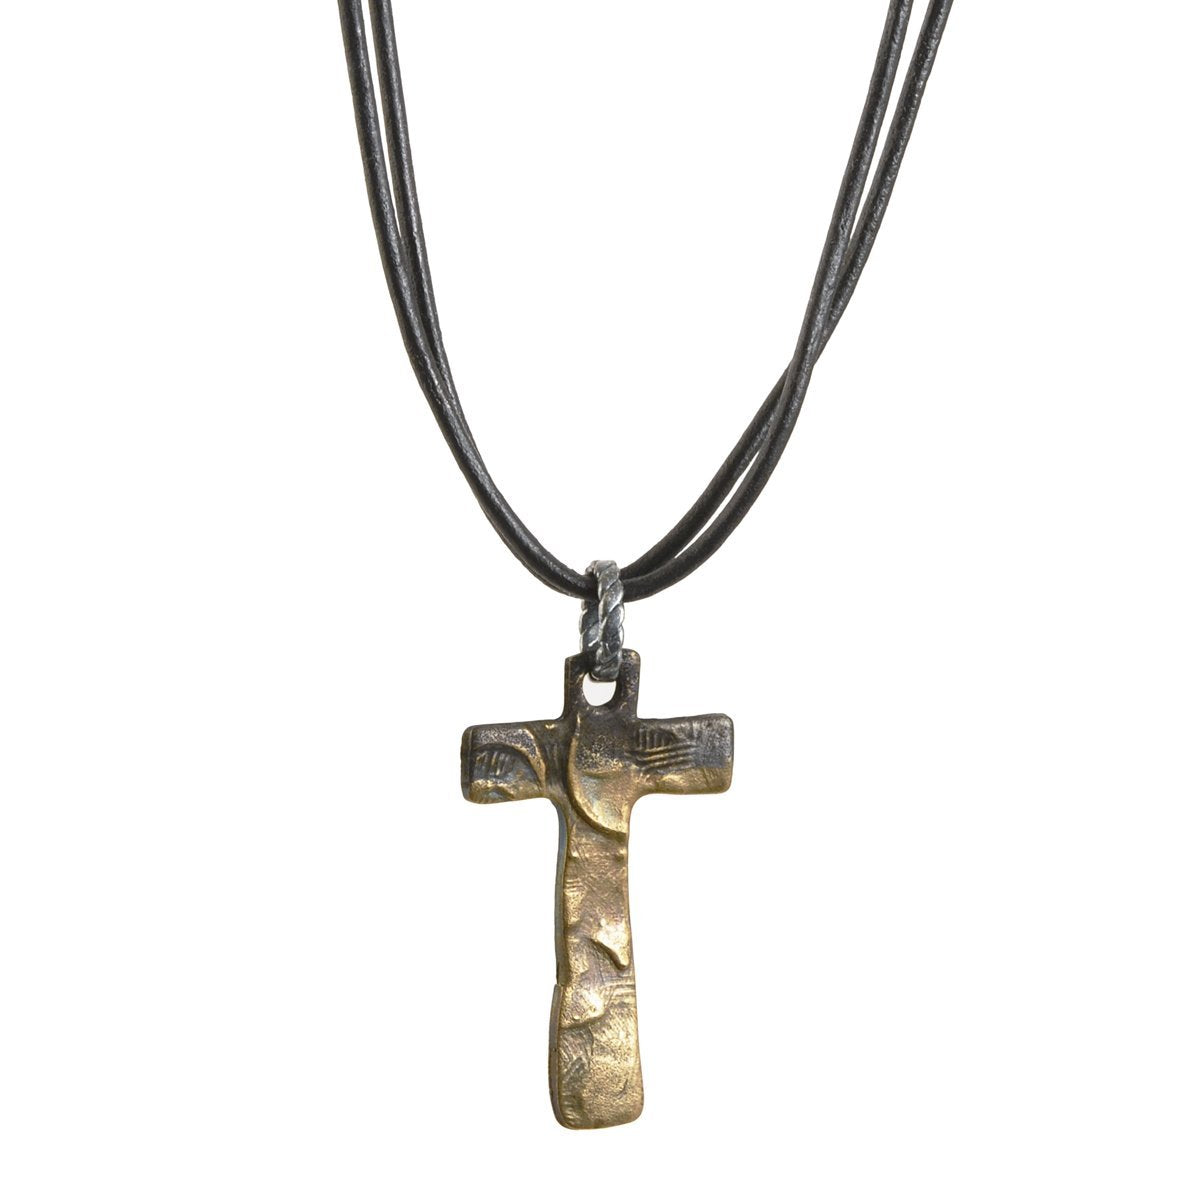 Leather Jewelry-Small Victorian Cross Necklace-Oxidized Bronze